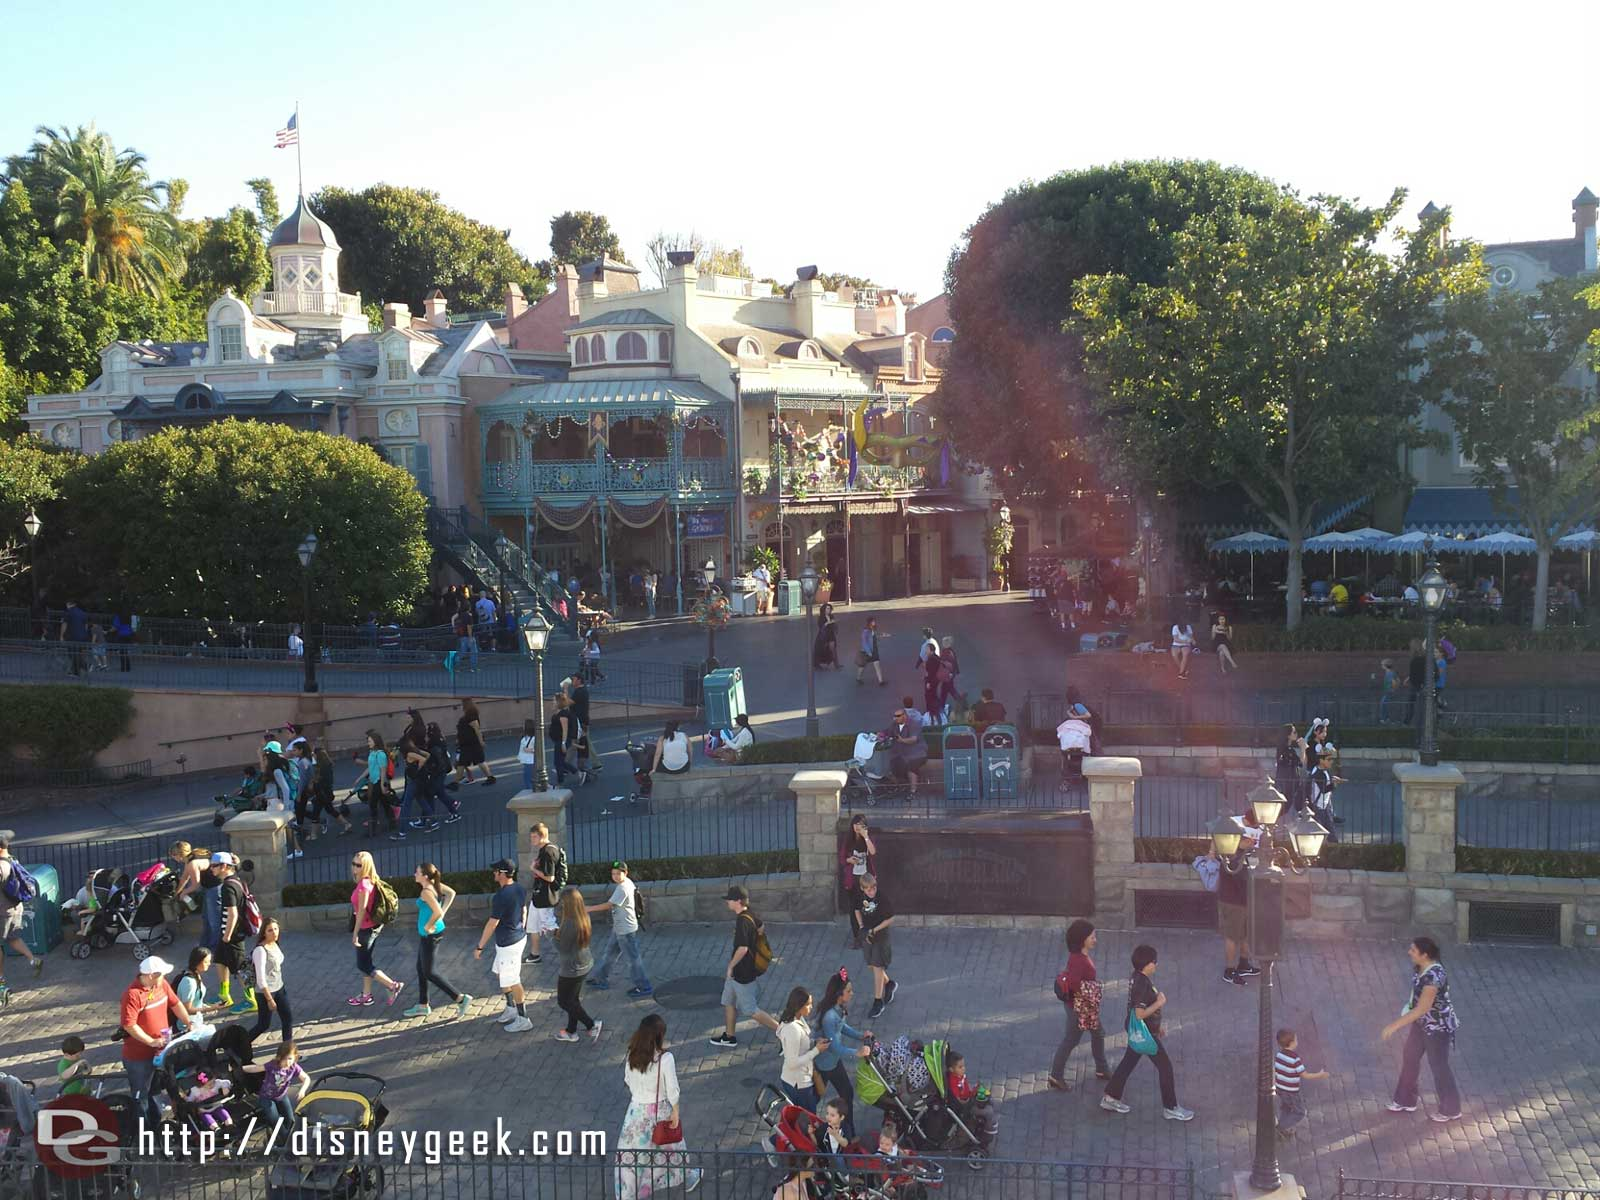 Cruising by New Orleans Square on the Mark Twain #Disneyland